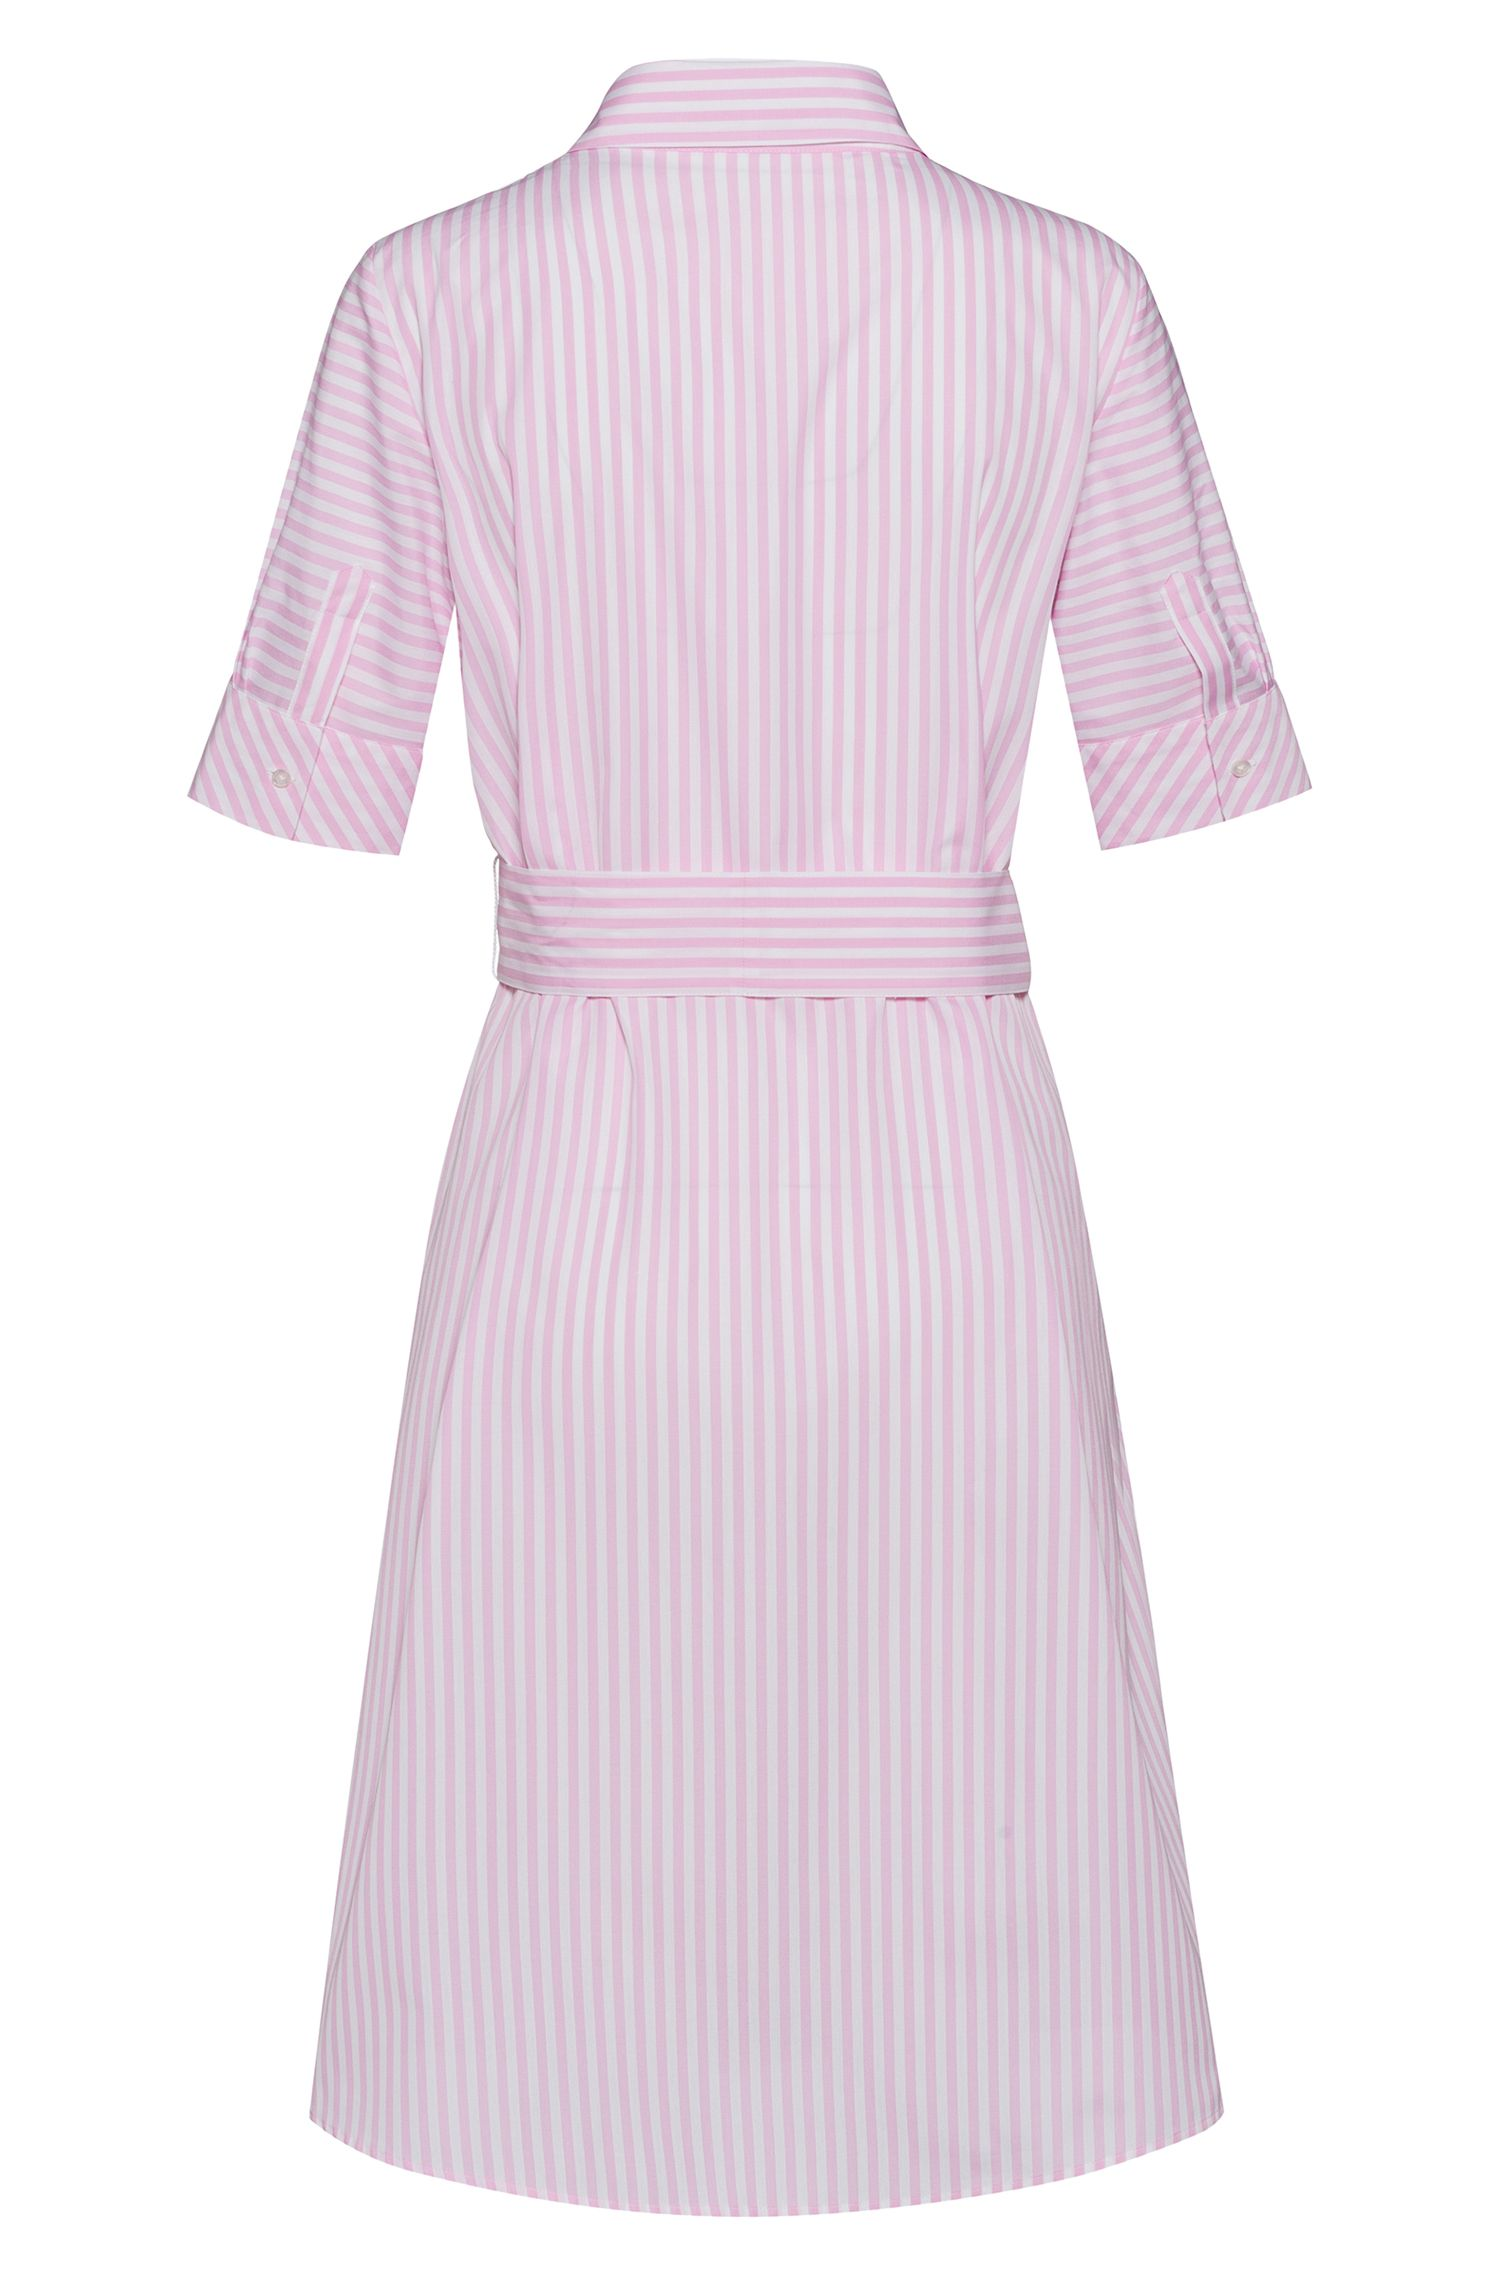 A-line shirt dress in striped cotton, Pink